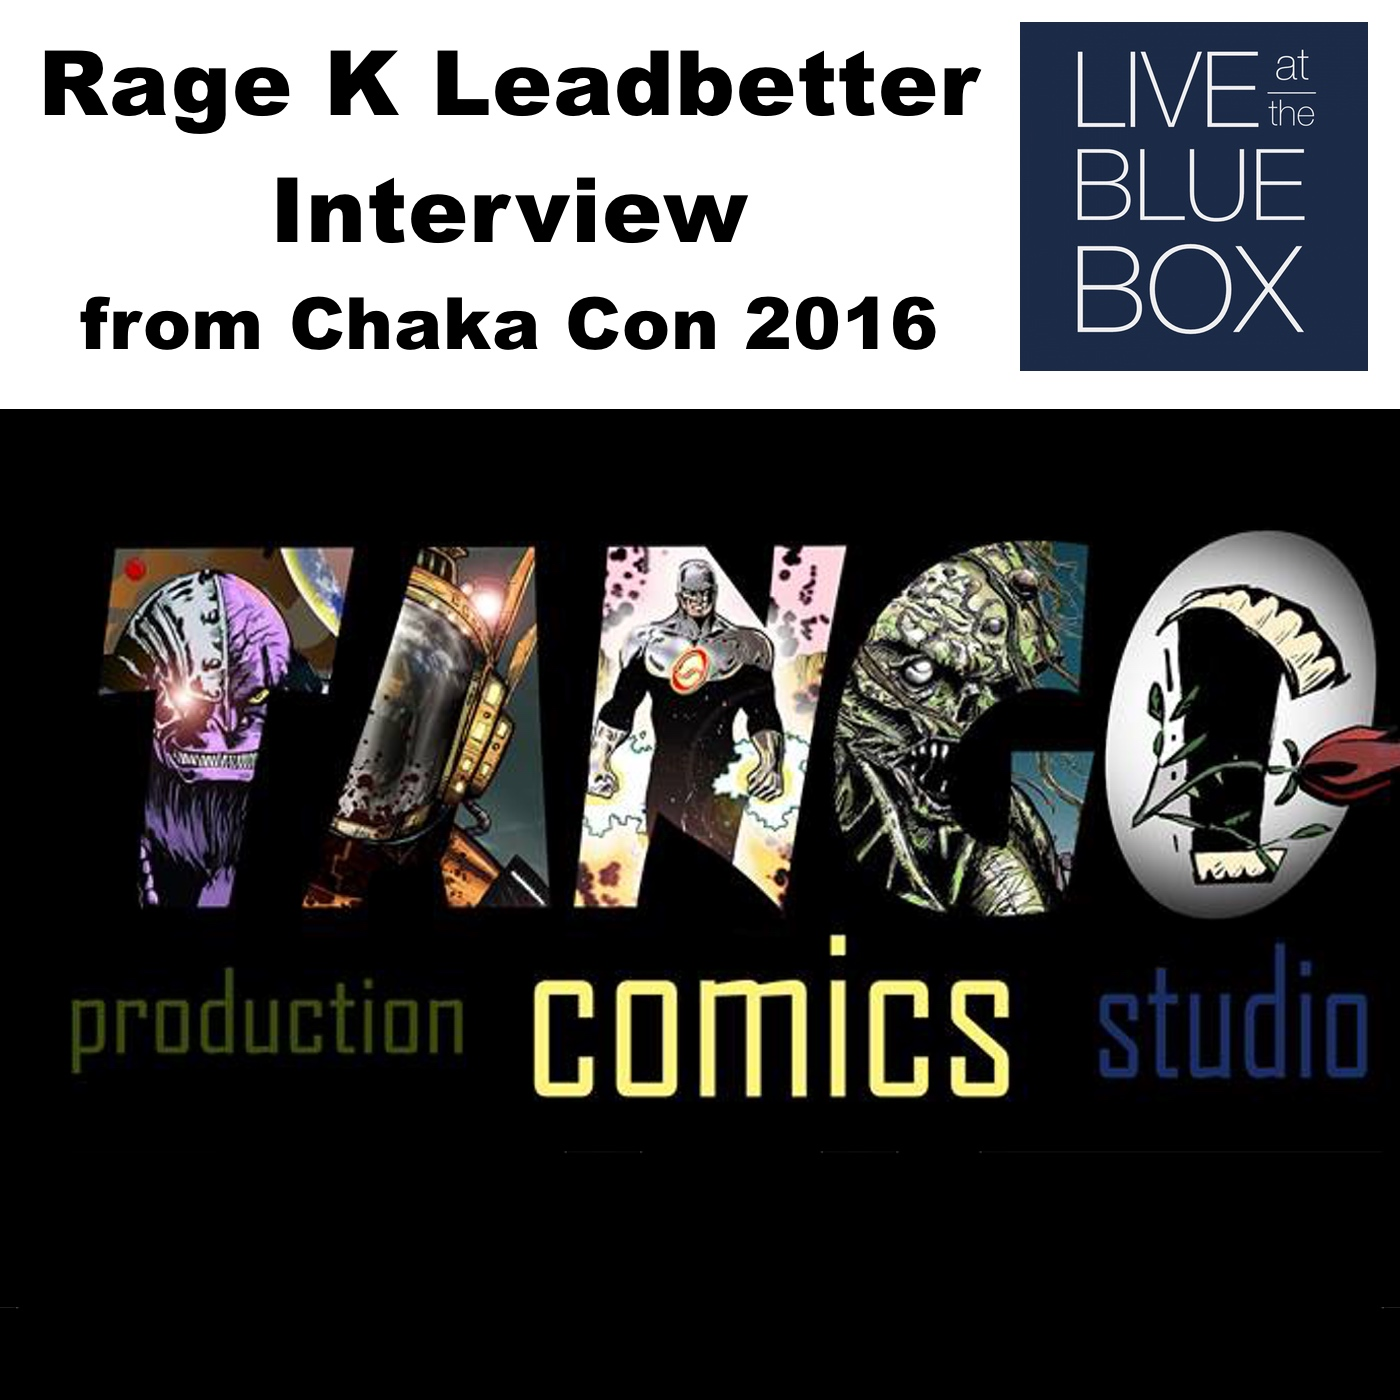 Rage K Leadbetter Interview 3-26-16